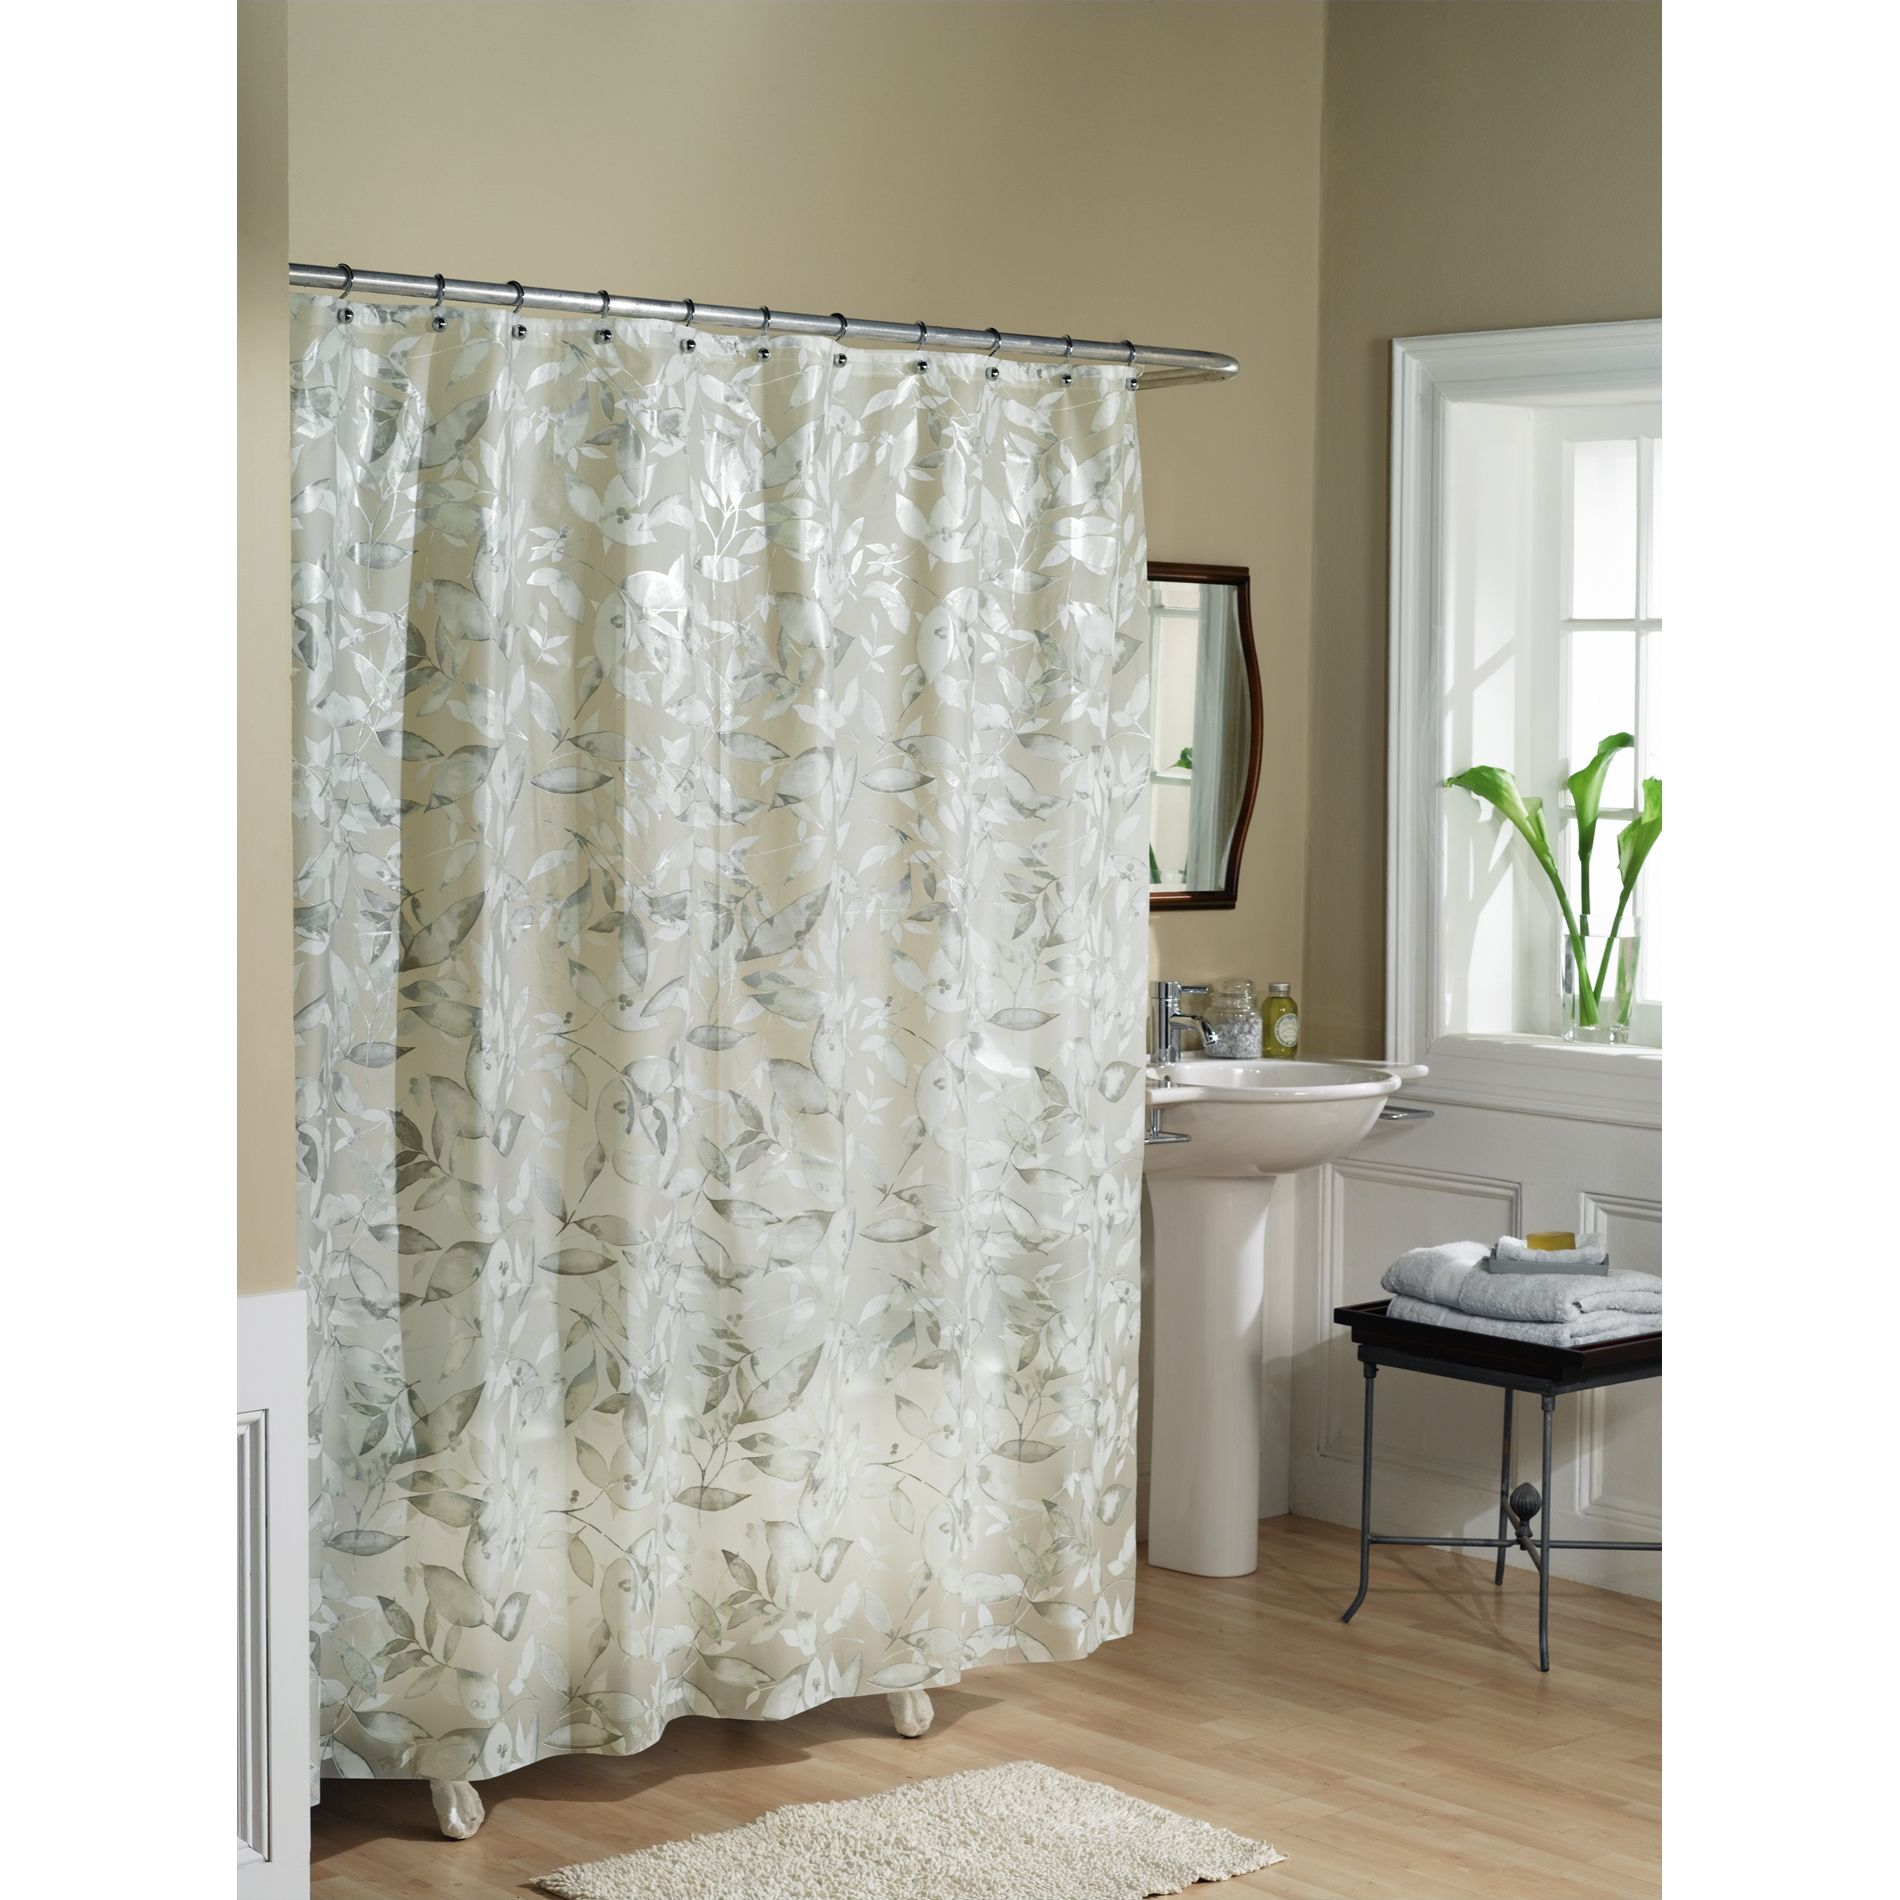 White shower curtain ideas - Decorative Ceramic Tiles For Bathroom